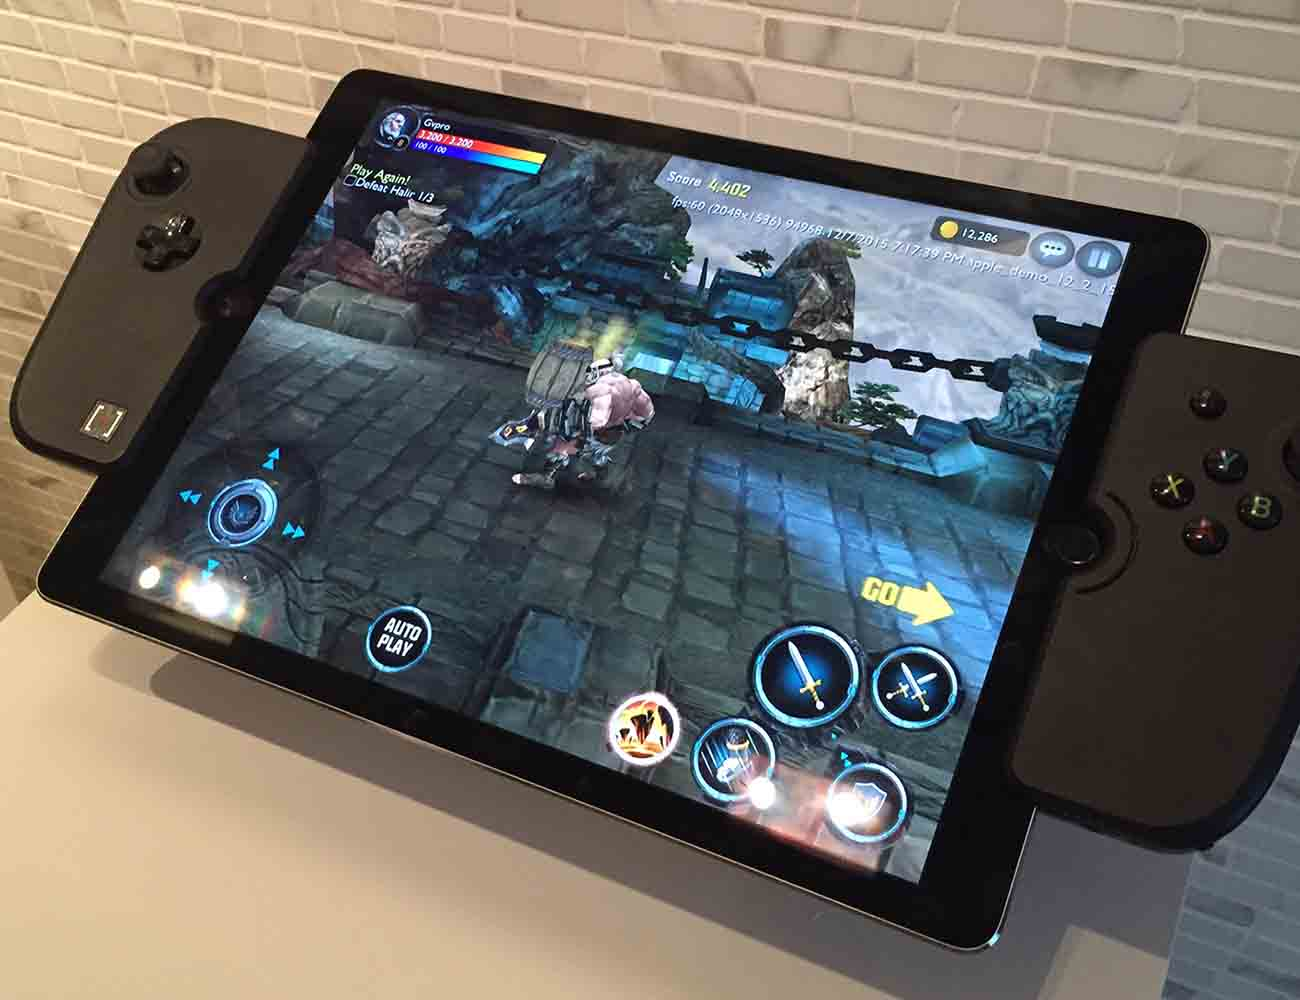 Gamevice Handheld Controller for iPad Mini